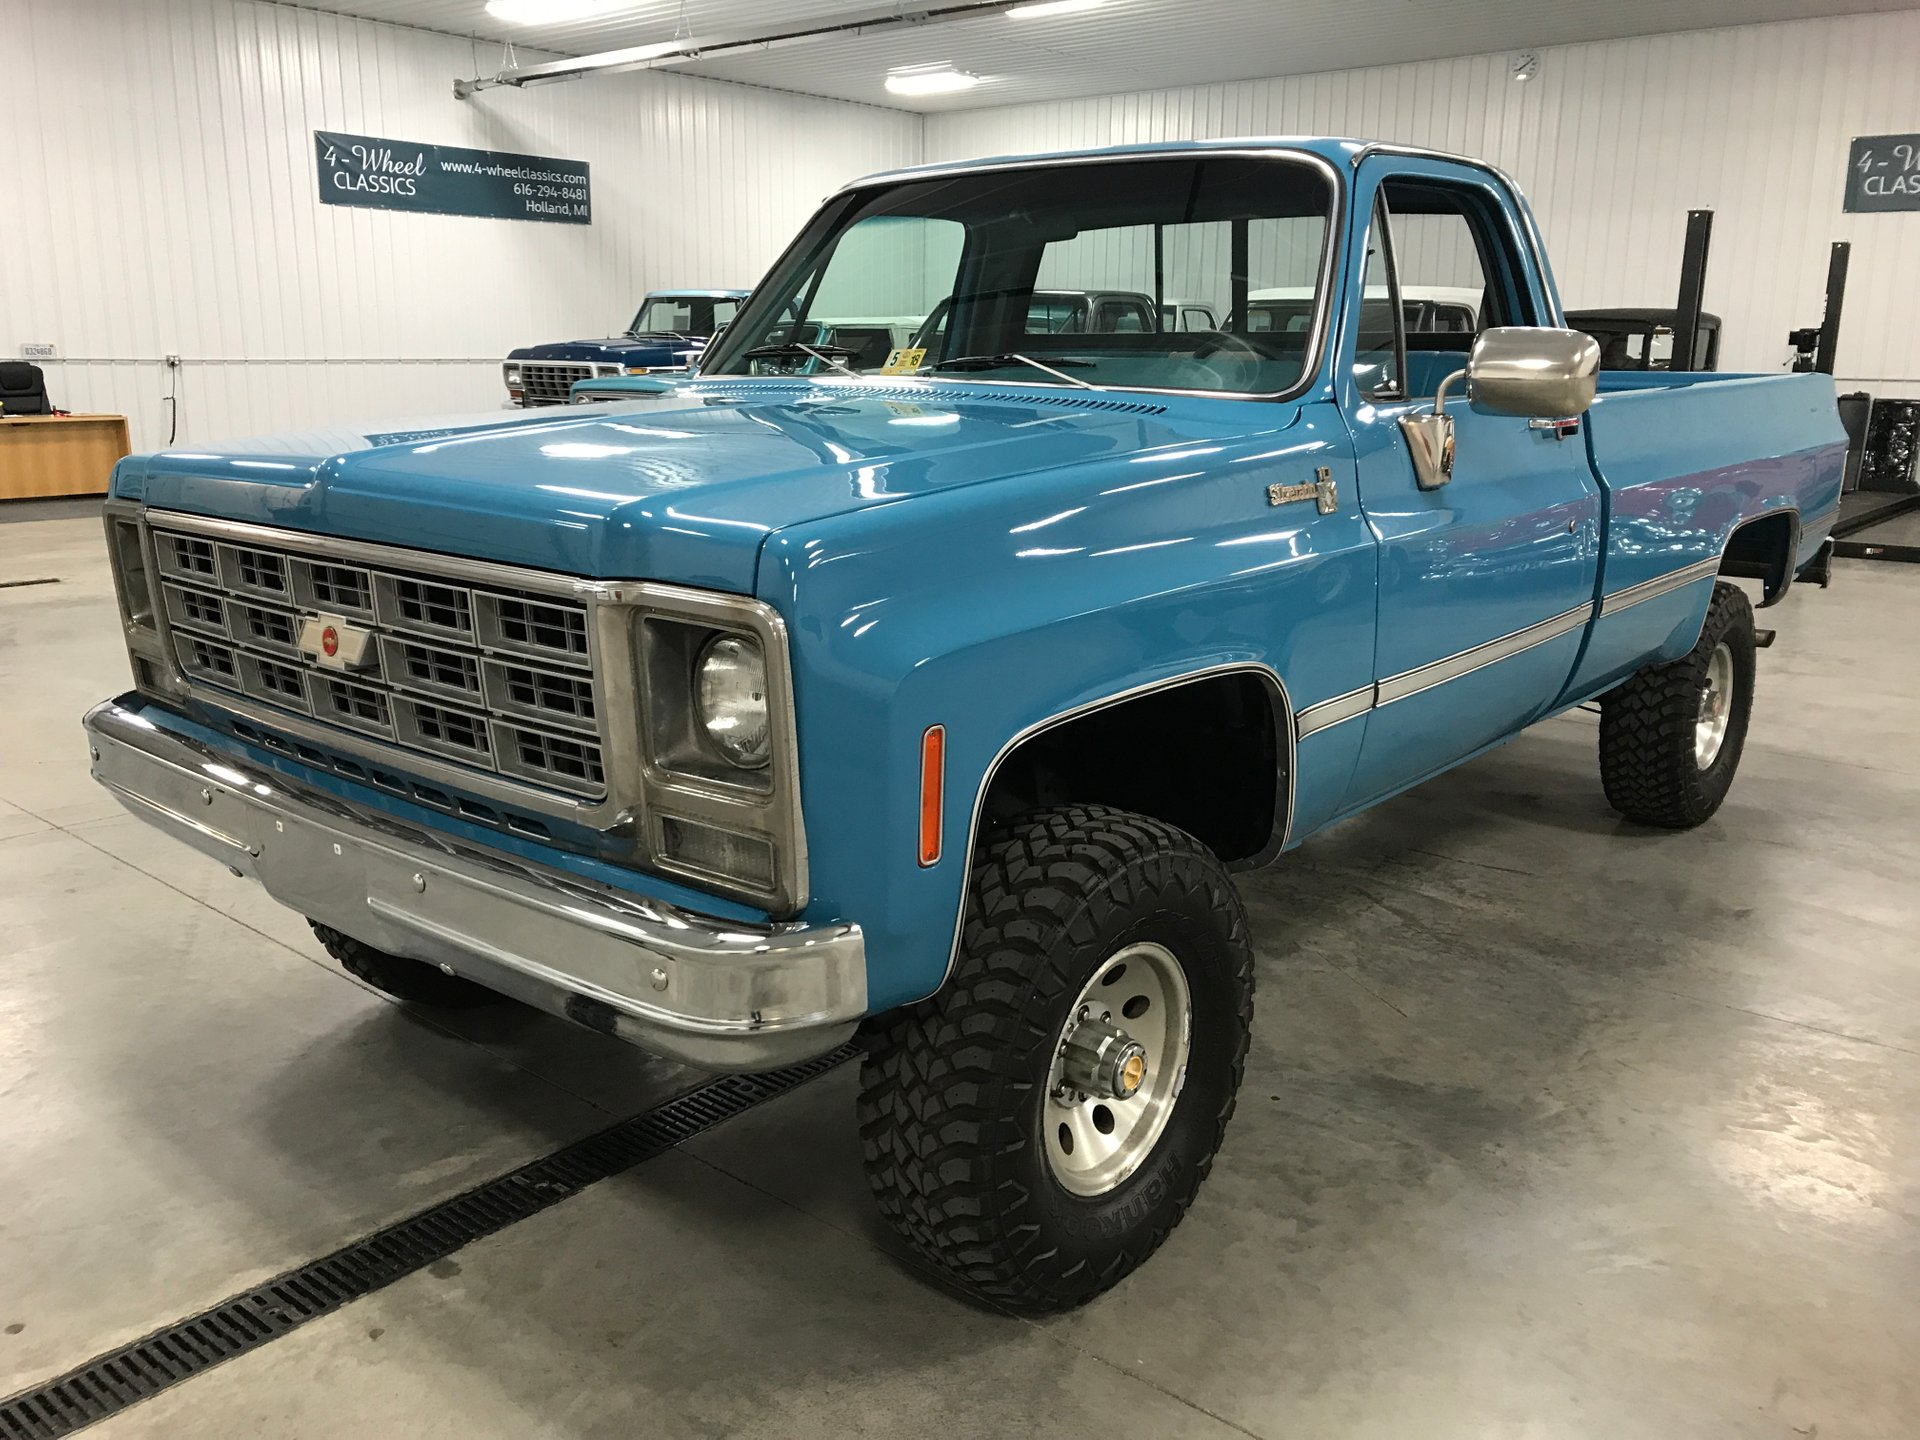 1979 Chevrolet K 10 Silverado 4 Wheel Classics Classic Car Truck And Suv Sales